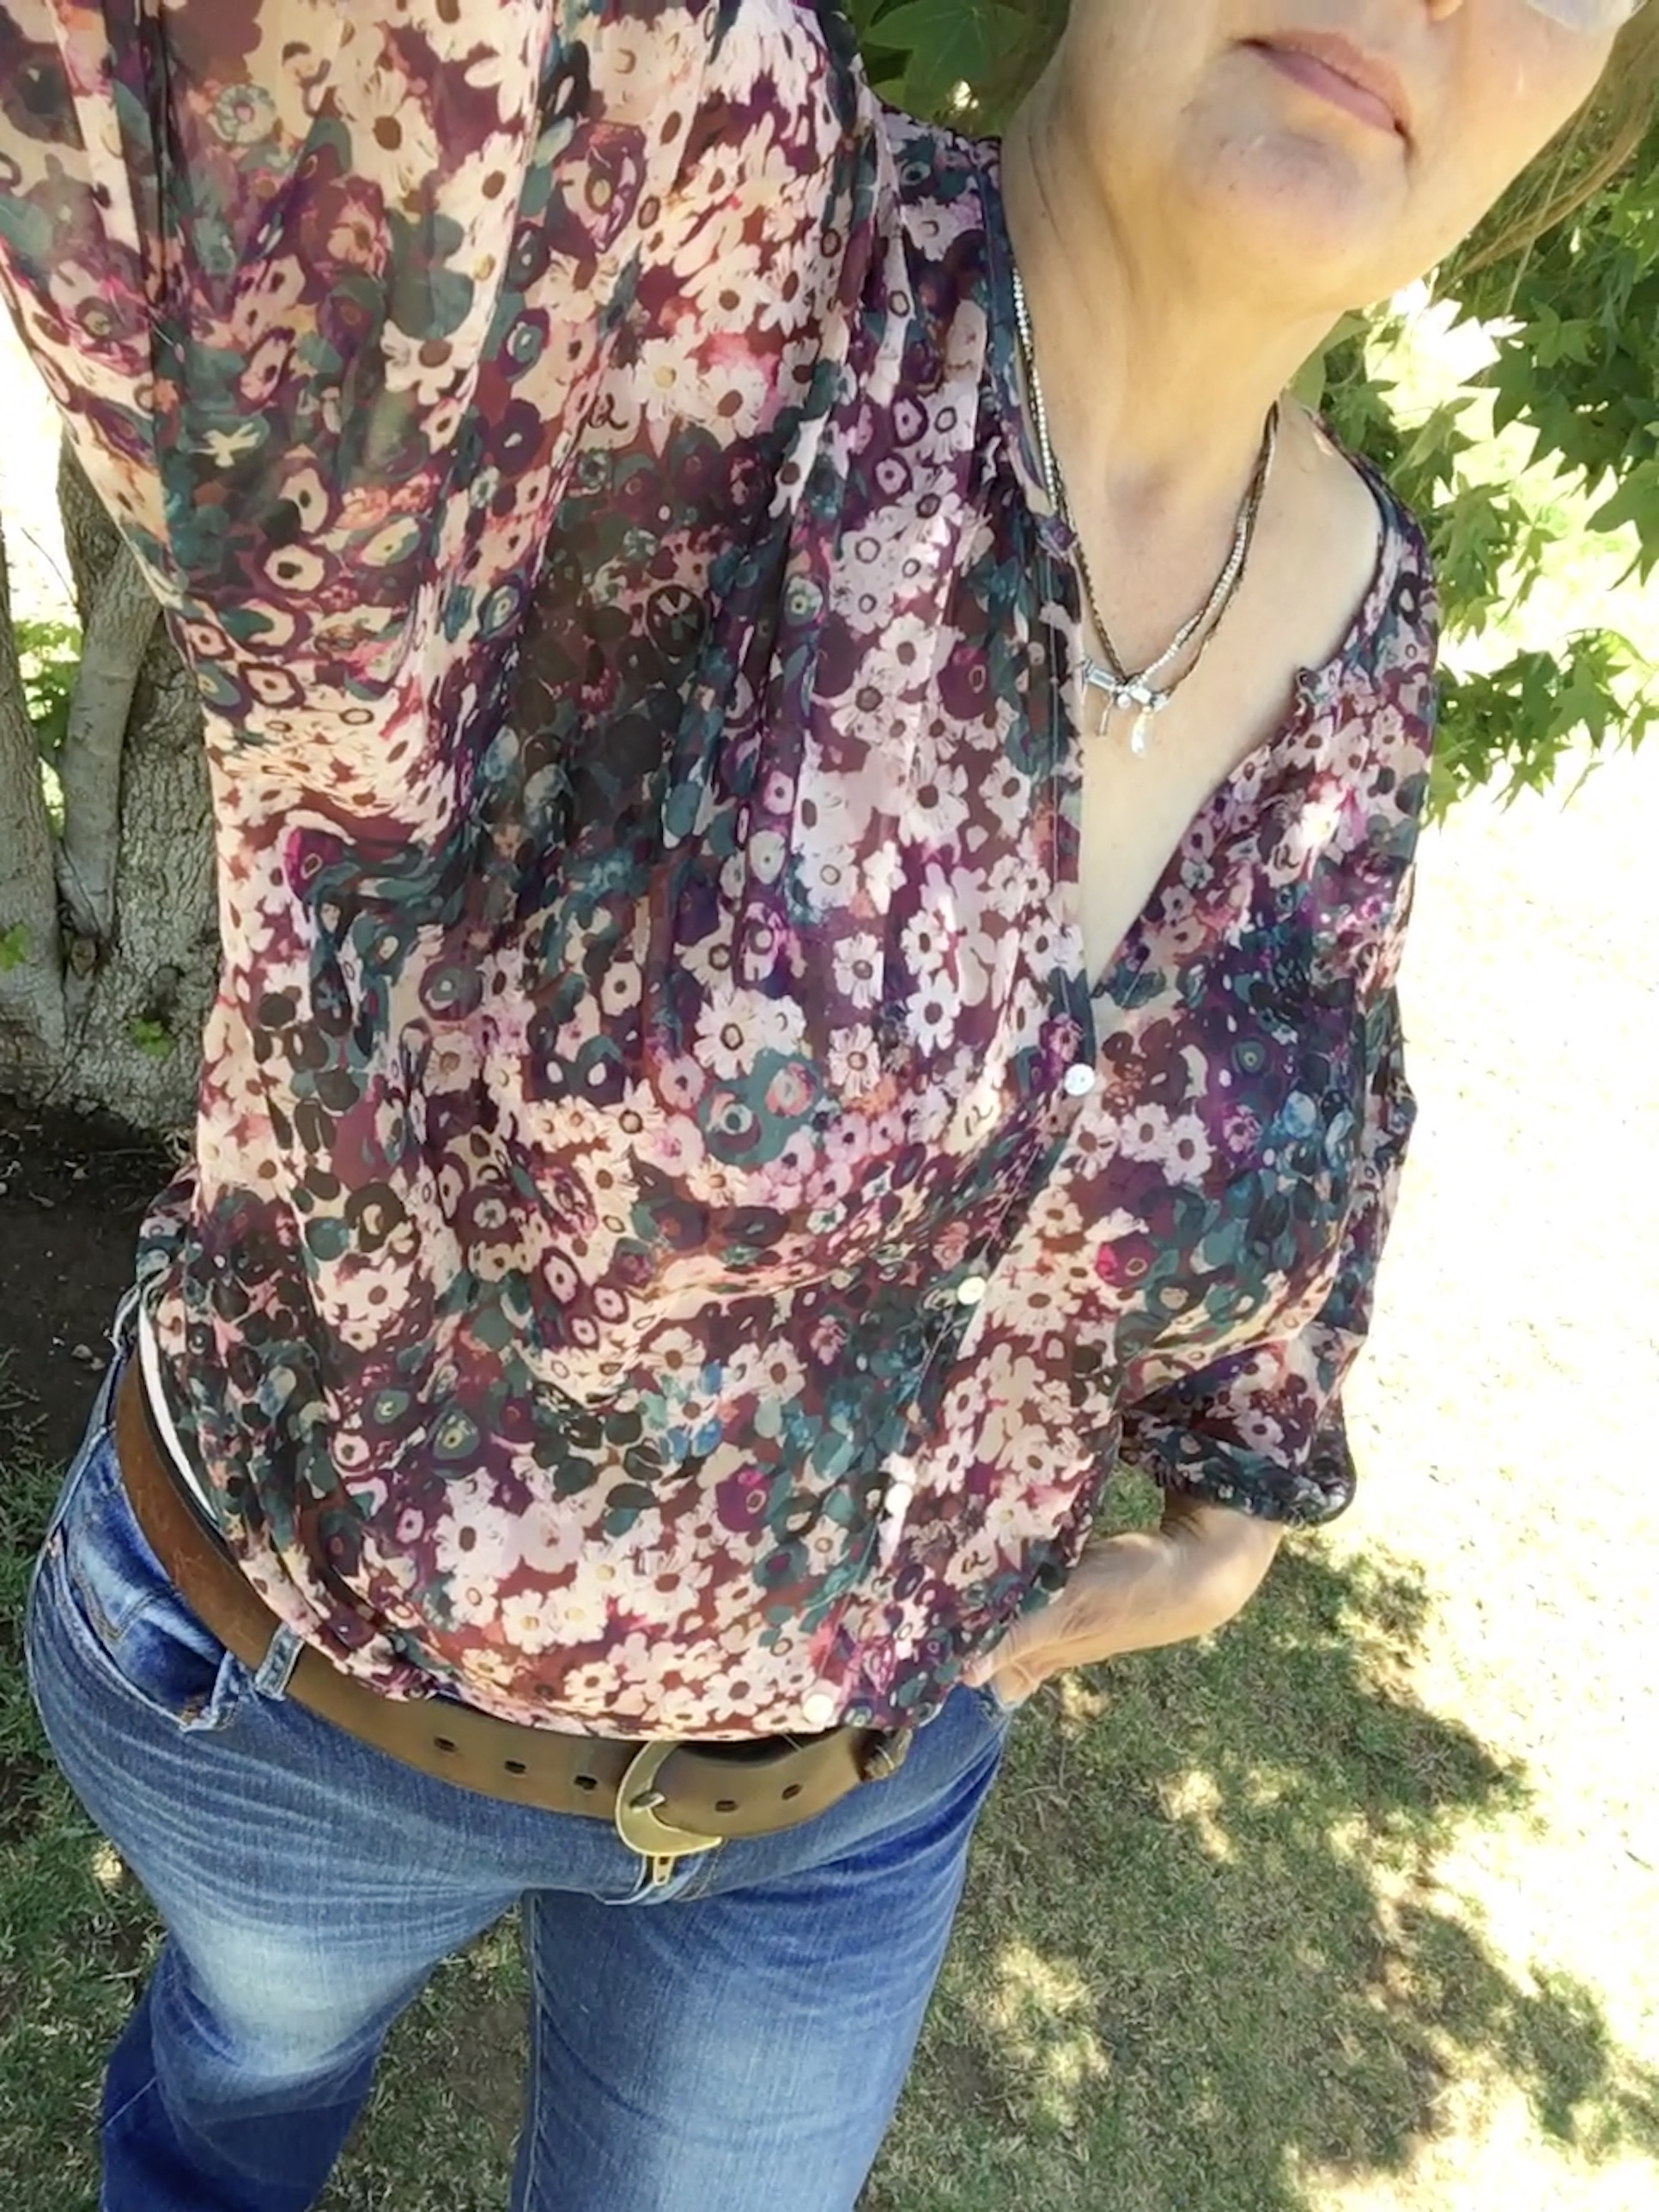 ChartreuseIndigoTurquoise Floral Print Blouse with 34 Sleeves; Women/'s Size 4-5Small Cotton Floral Button Up Top